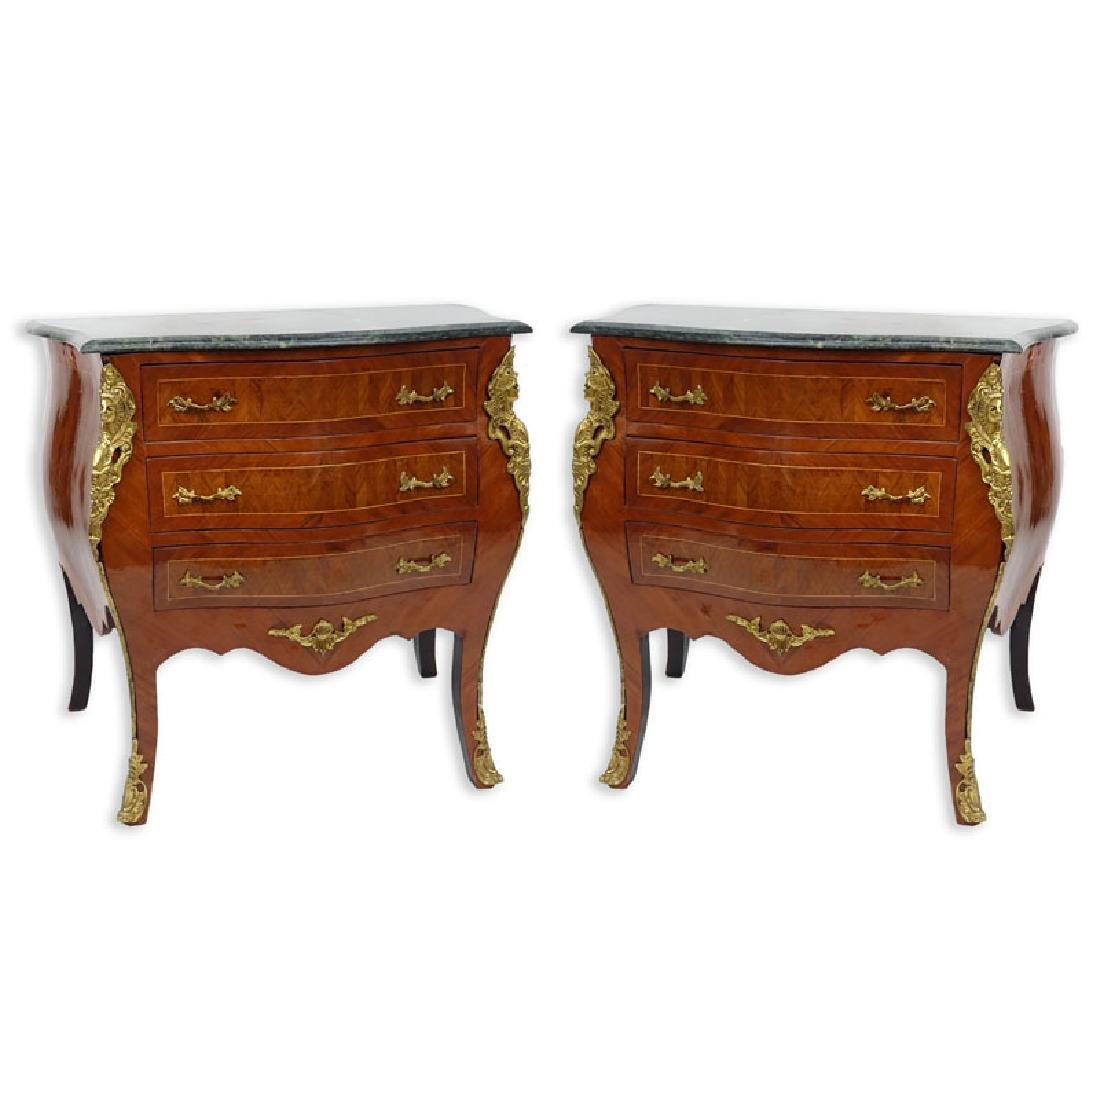 Pair of 20th Century Louis XVI Style Marquetry Inlaid